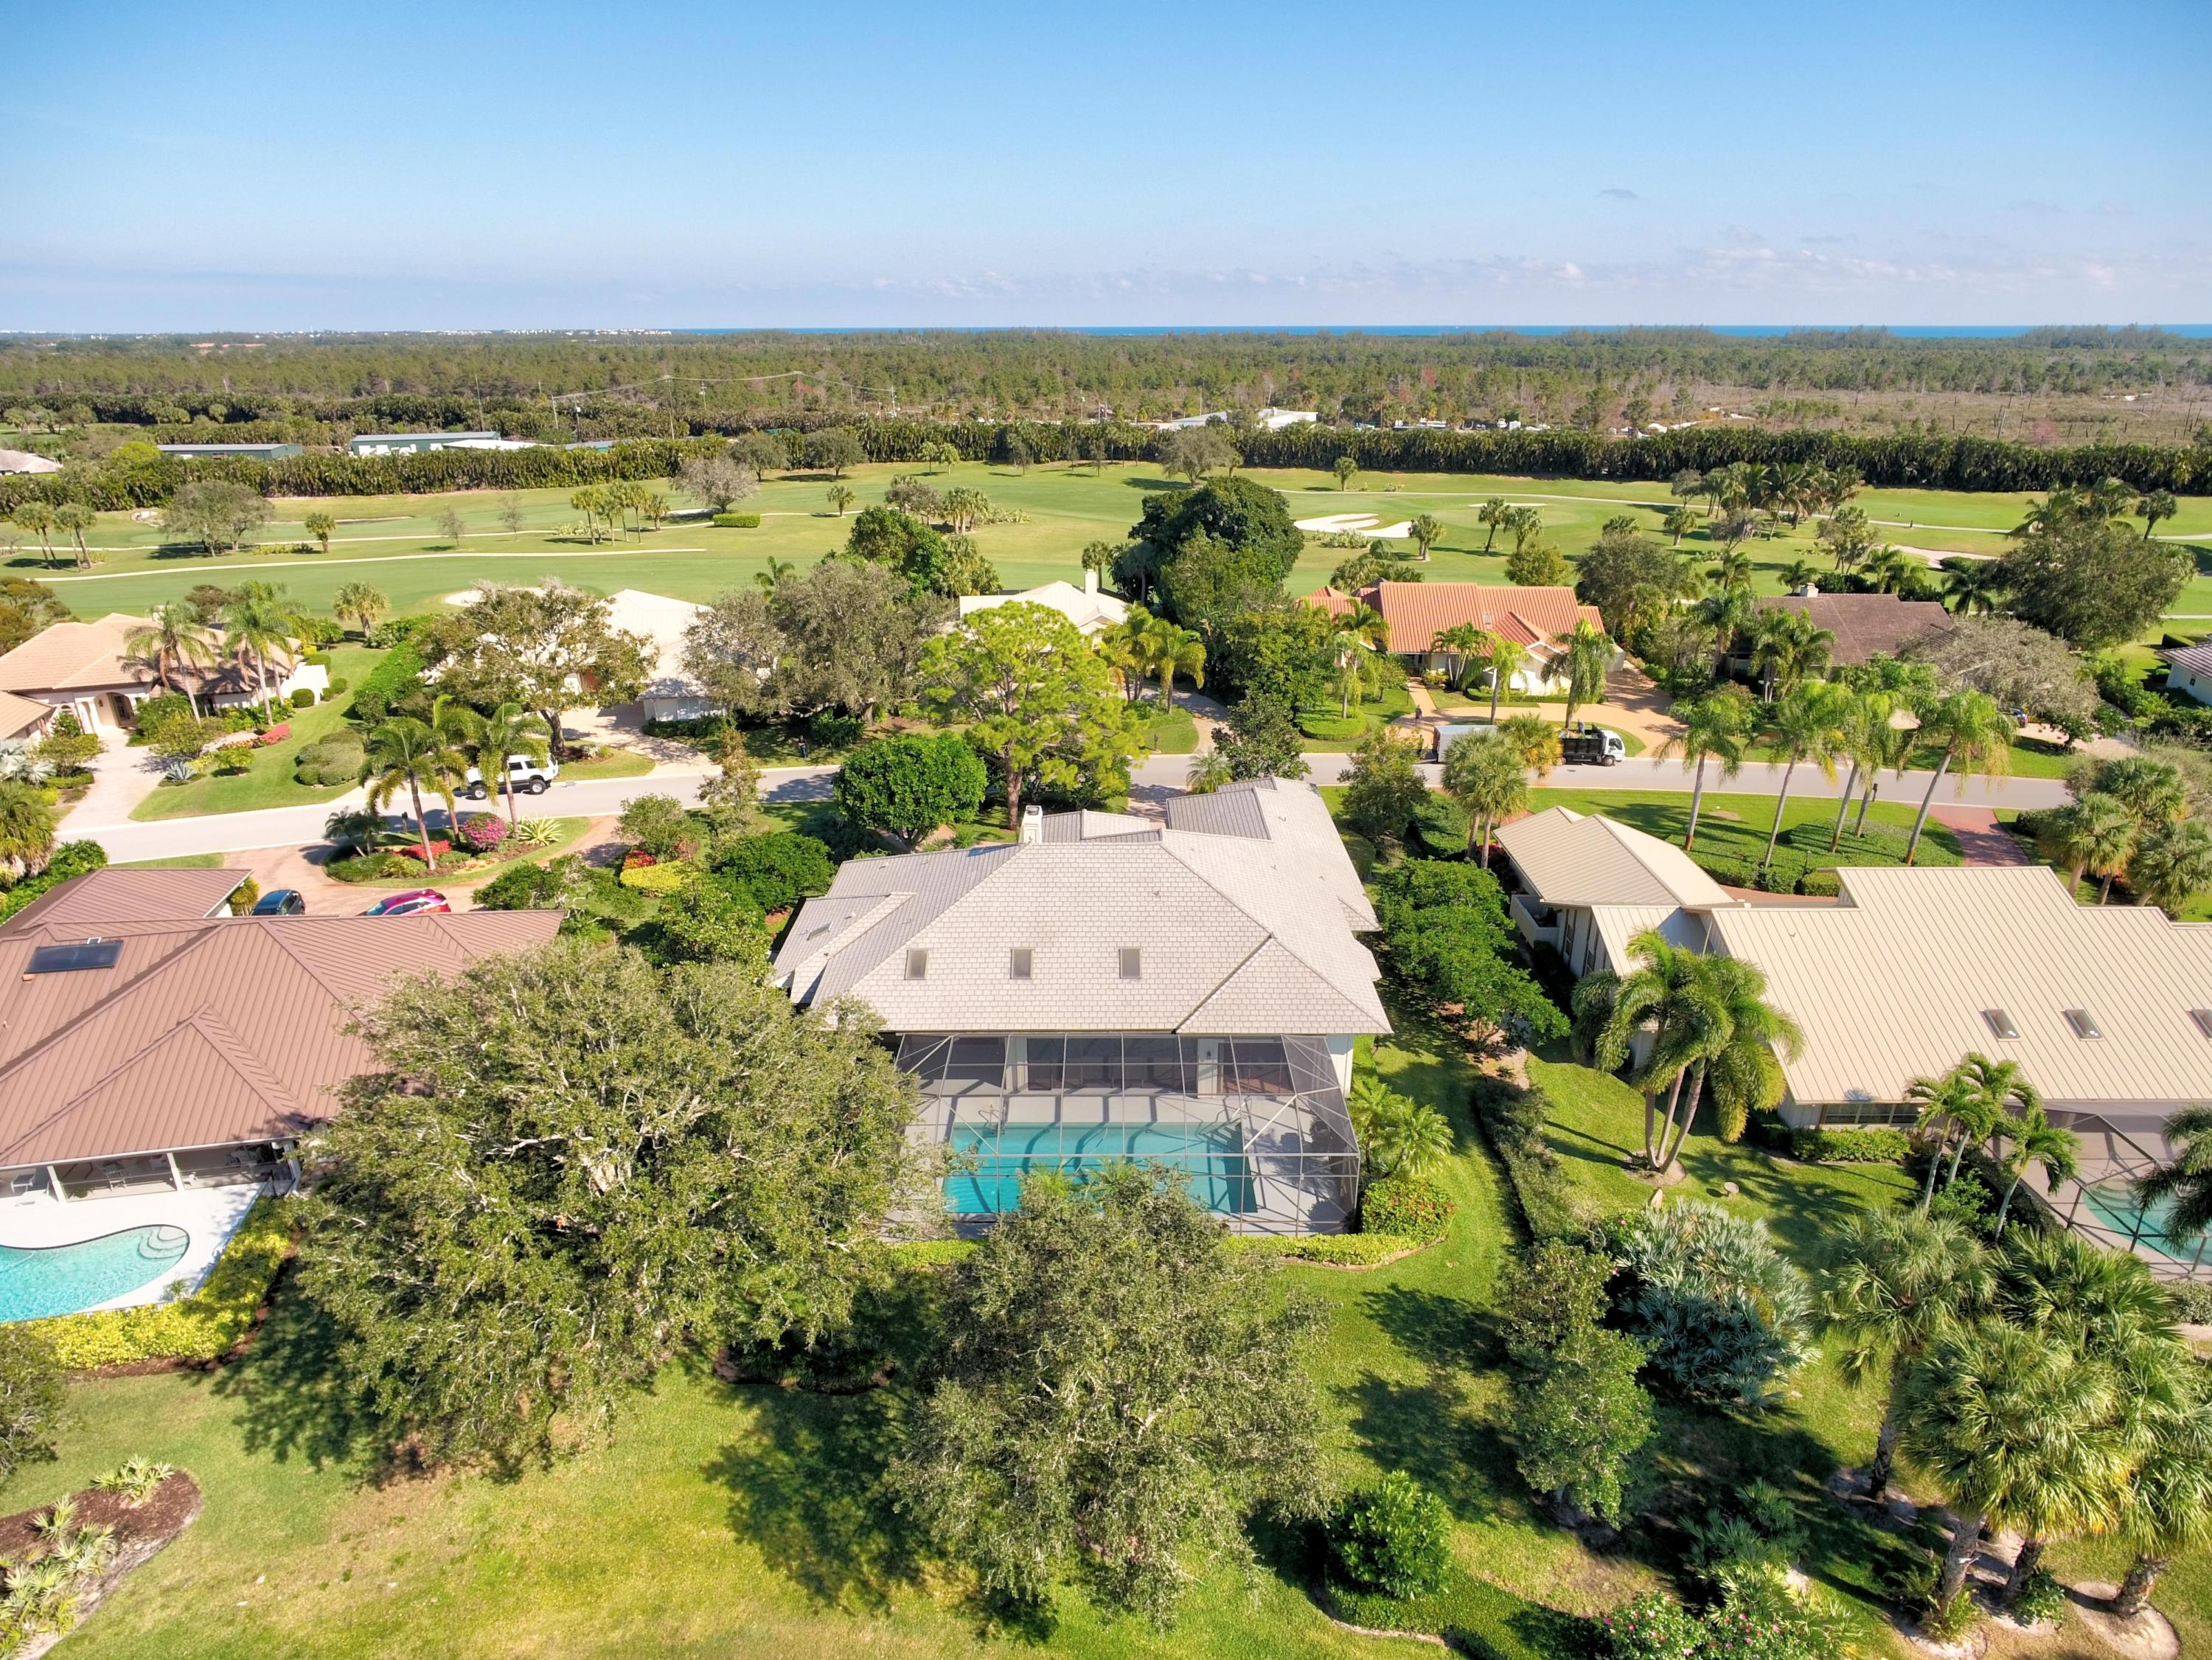 6280 Winged Foot Drive, Stuart, Florida 34997, 4 Bedrooms Bedrooms, ,3 BathroomsBathrooms,A,Single family,Winged Foot,RX-10495100